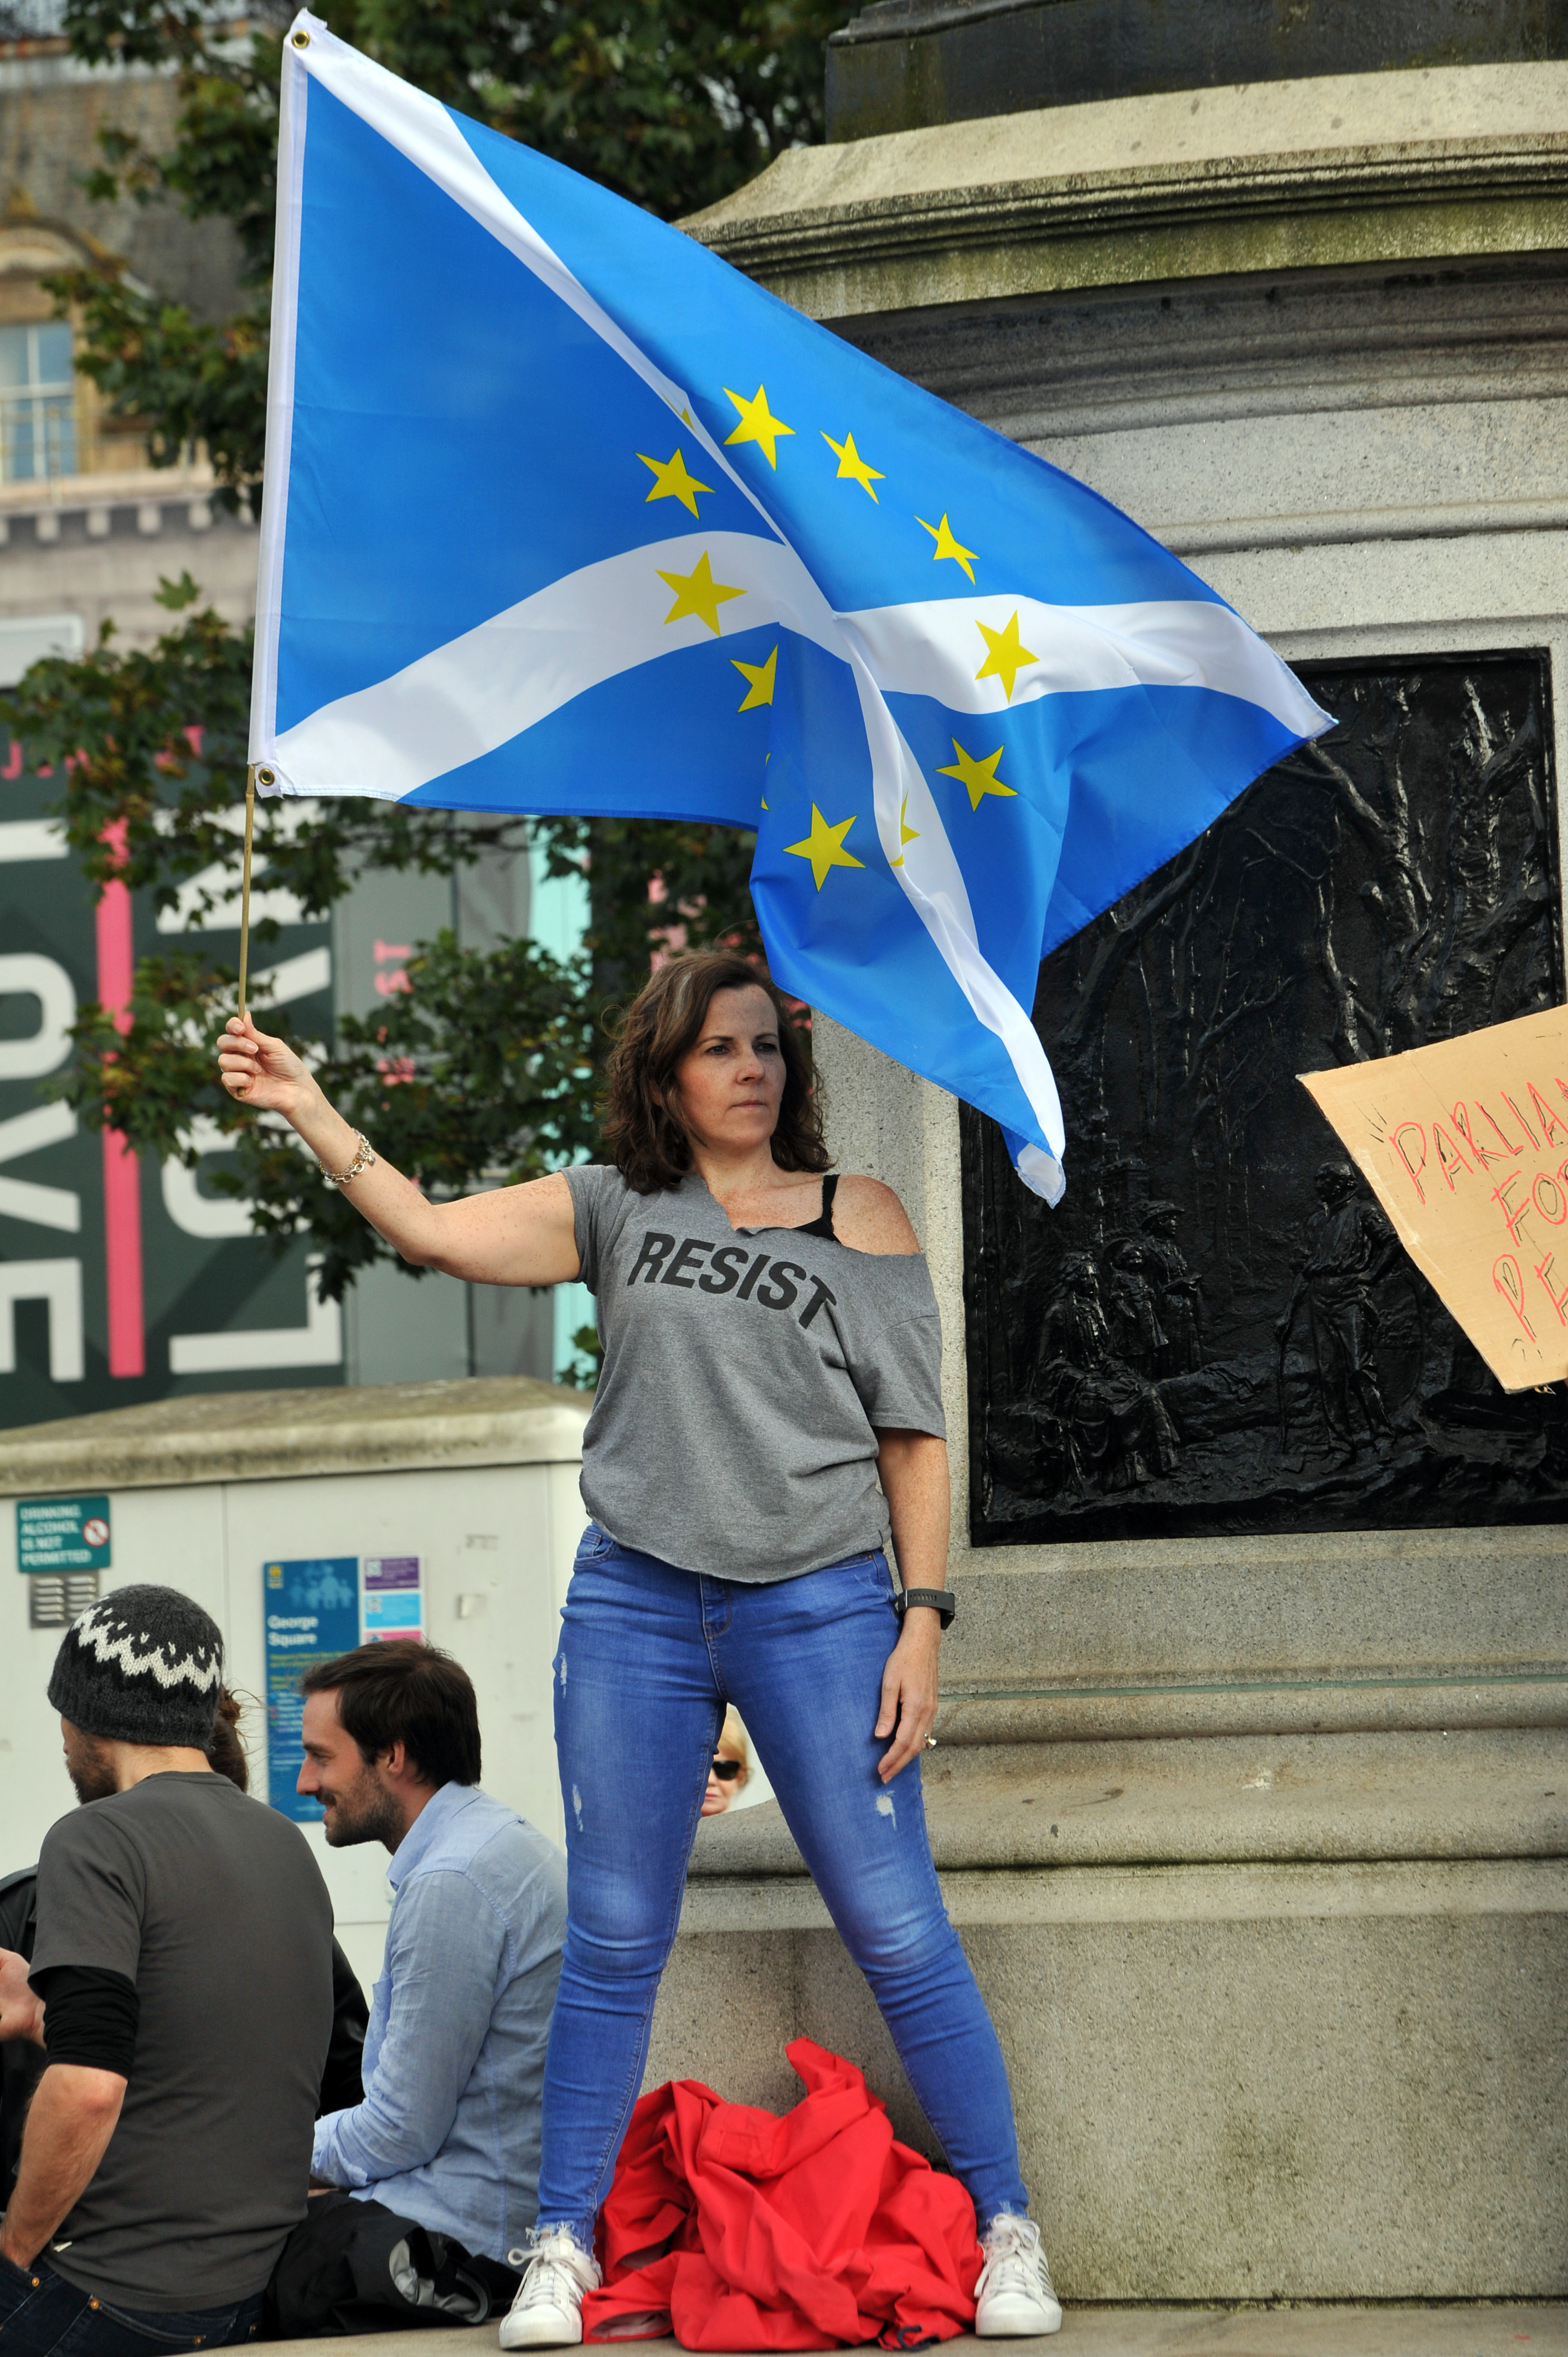 """A demonstrator flies a Scottish Saltire EU composite flag during a protest against the British government's move to suspend parliament in the final weeks before Brexit in Glasgow on August 31, 2019. - Demonstrations, being dubbed """"Stop The Coup"""" by organisers, were to be held across Britain on August 31 against Prime Minister Boris Johnson's move to suspend parliament in the final weeks before Brexit. The protests come ahead of an intense political week in which Johnson's opponents will seek to block the move in court and legislate against a no-deal departure from the European Union. (Photo by Andy Buchanan / AFP)        (Photo credit should read ANDY BUCHANAN/AFP/Getty Images)"""